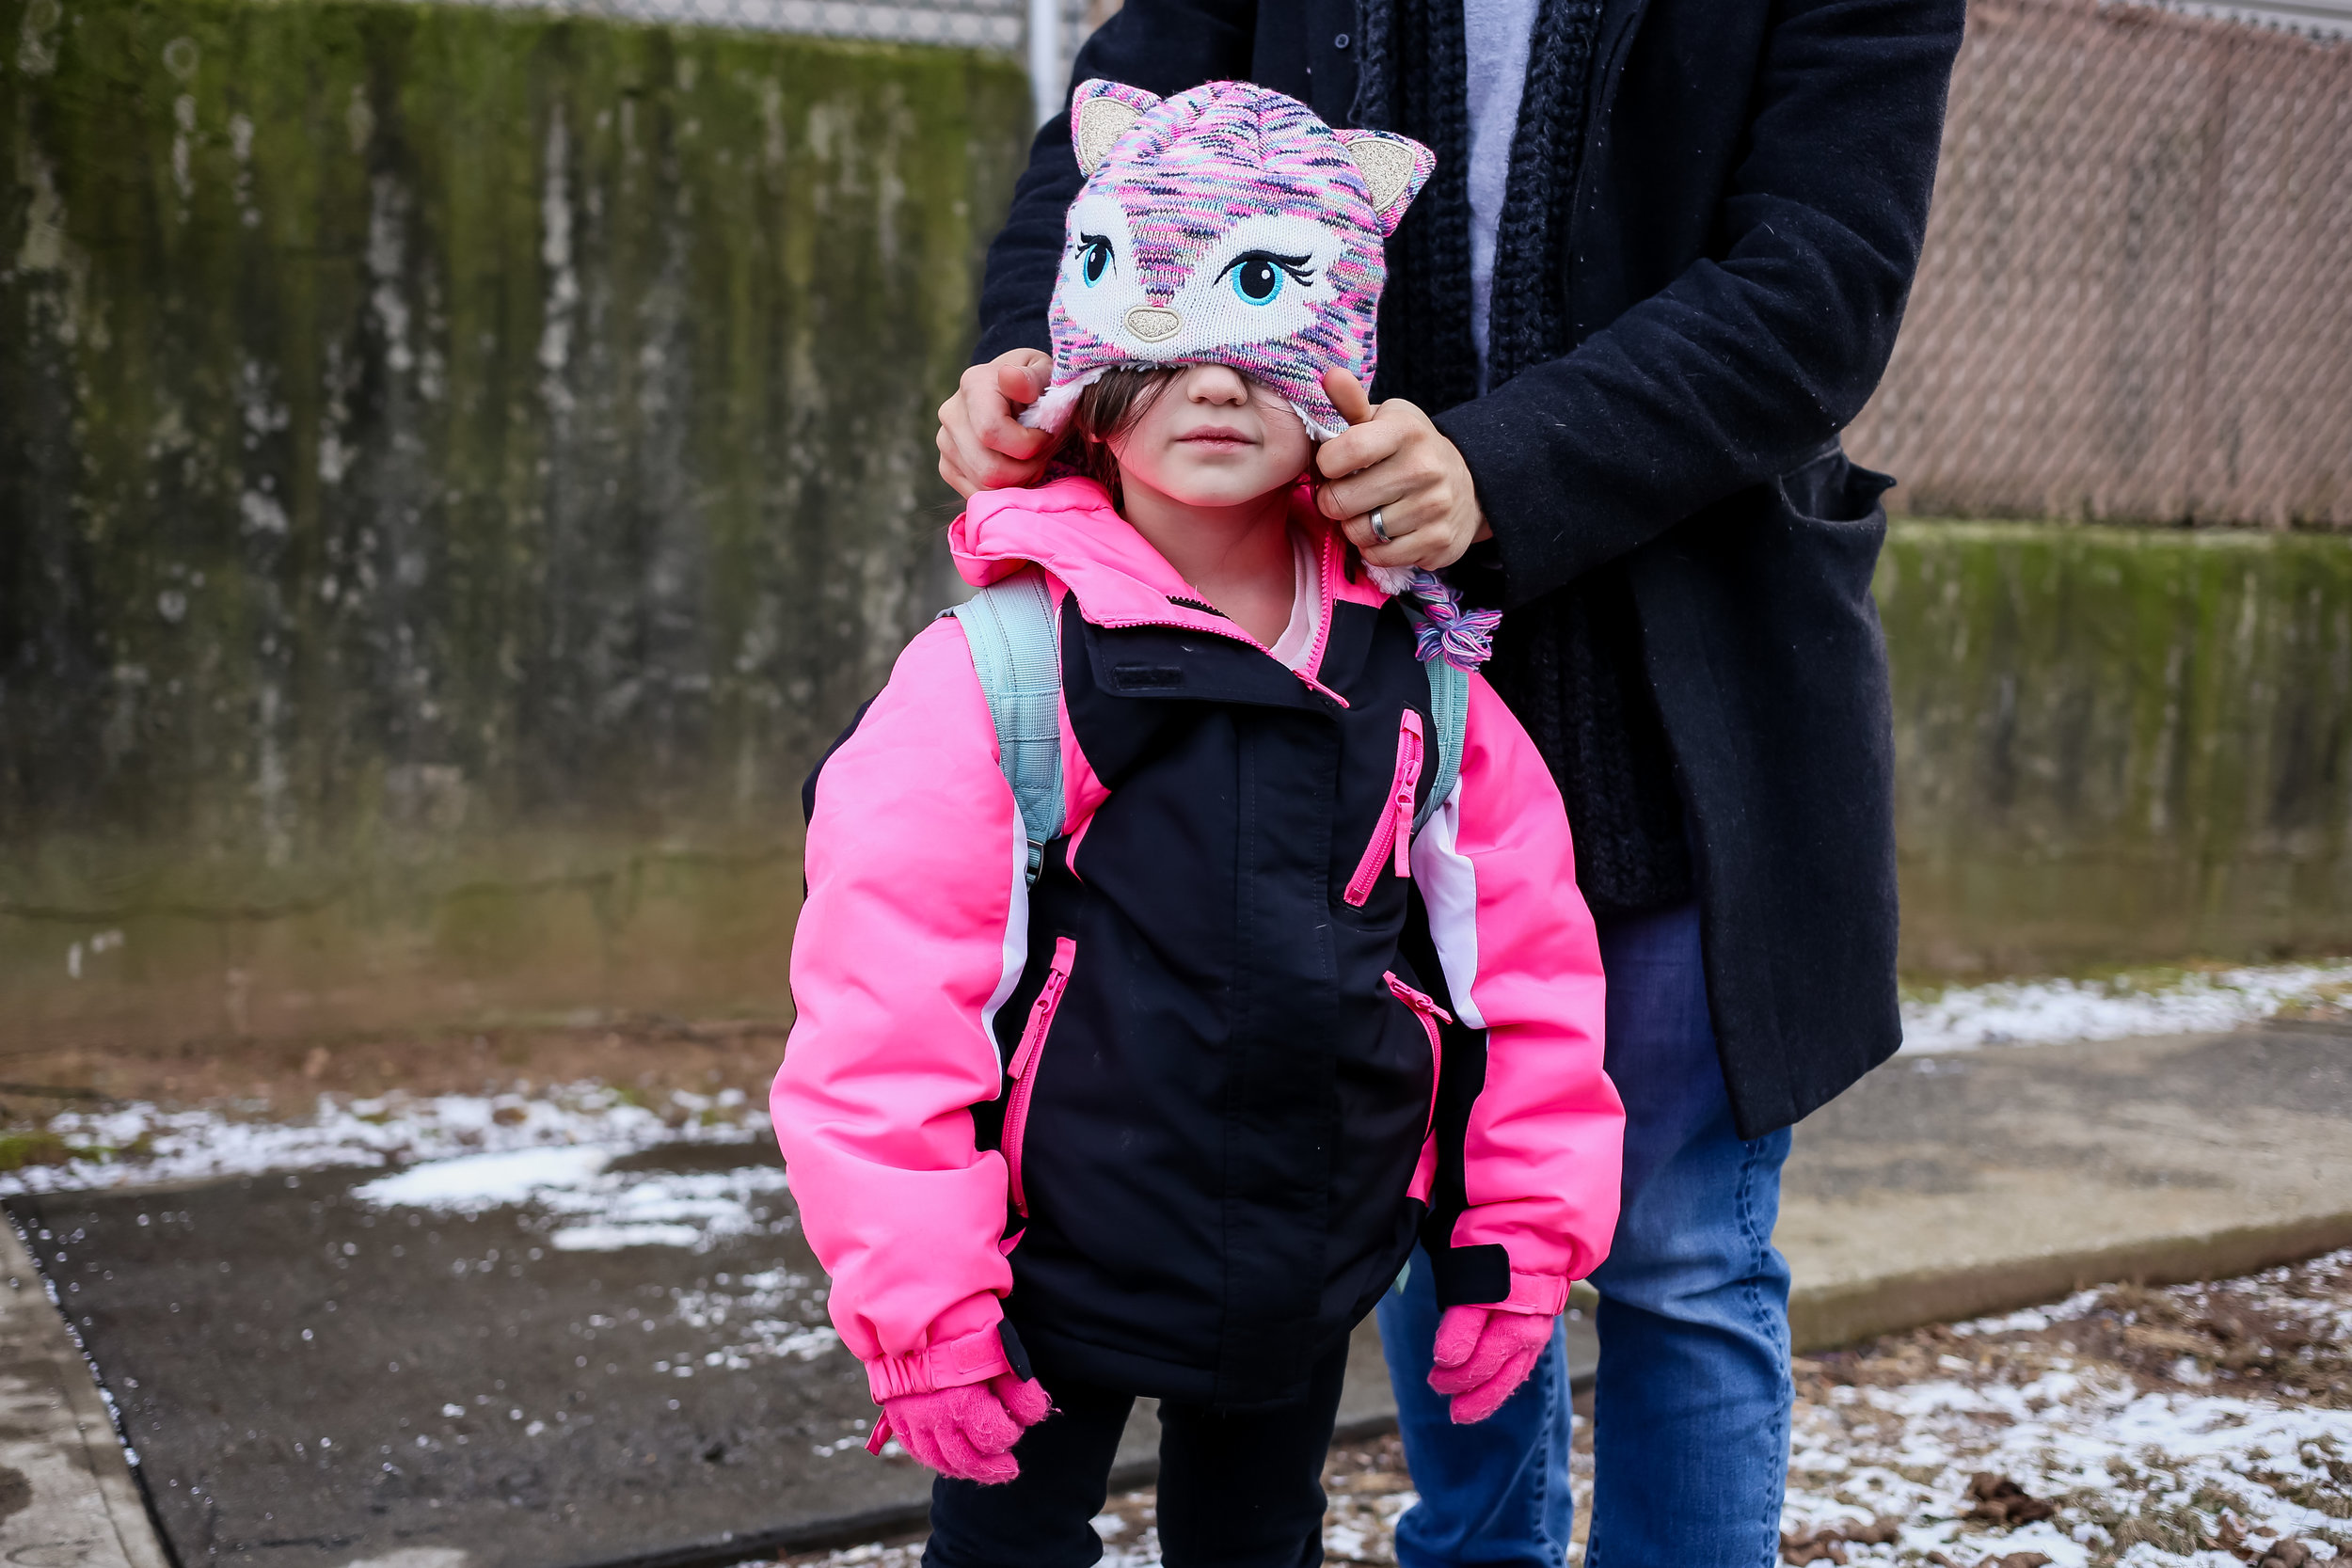 Young girl with winter hat and backpack, coming home from school.